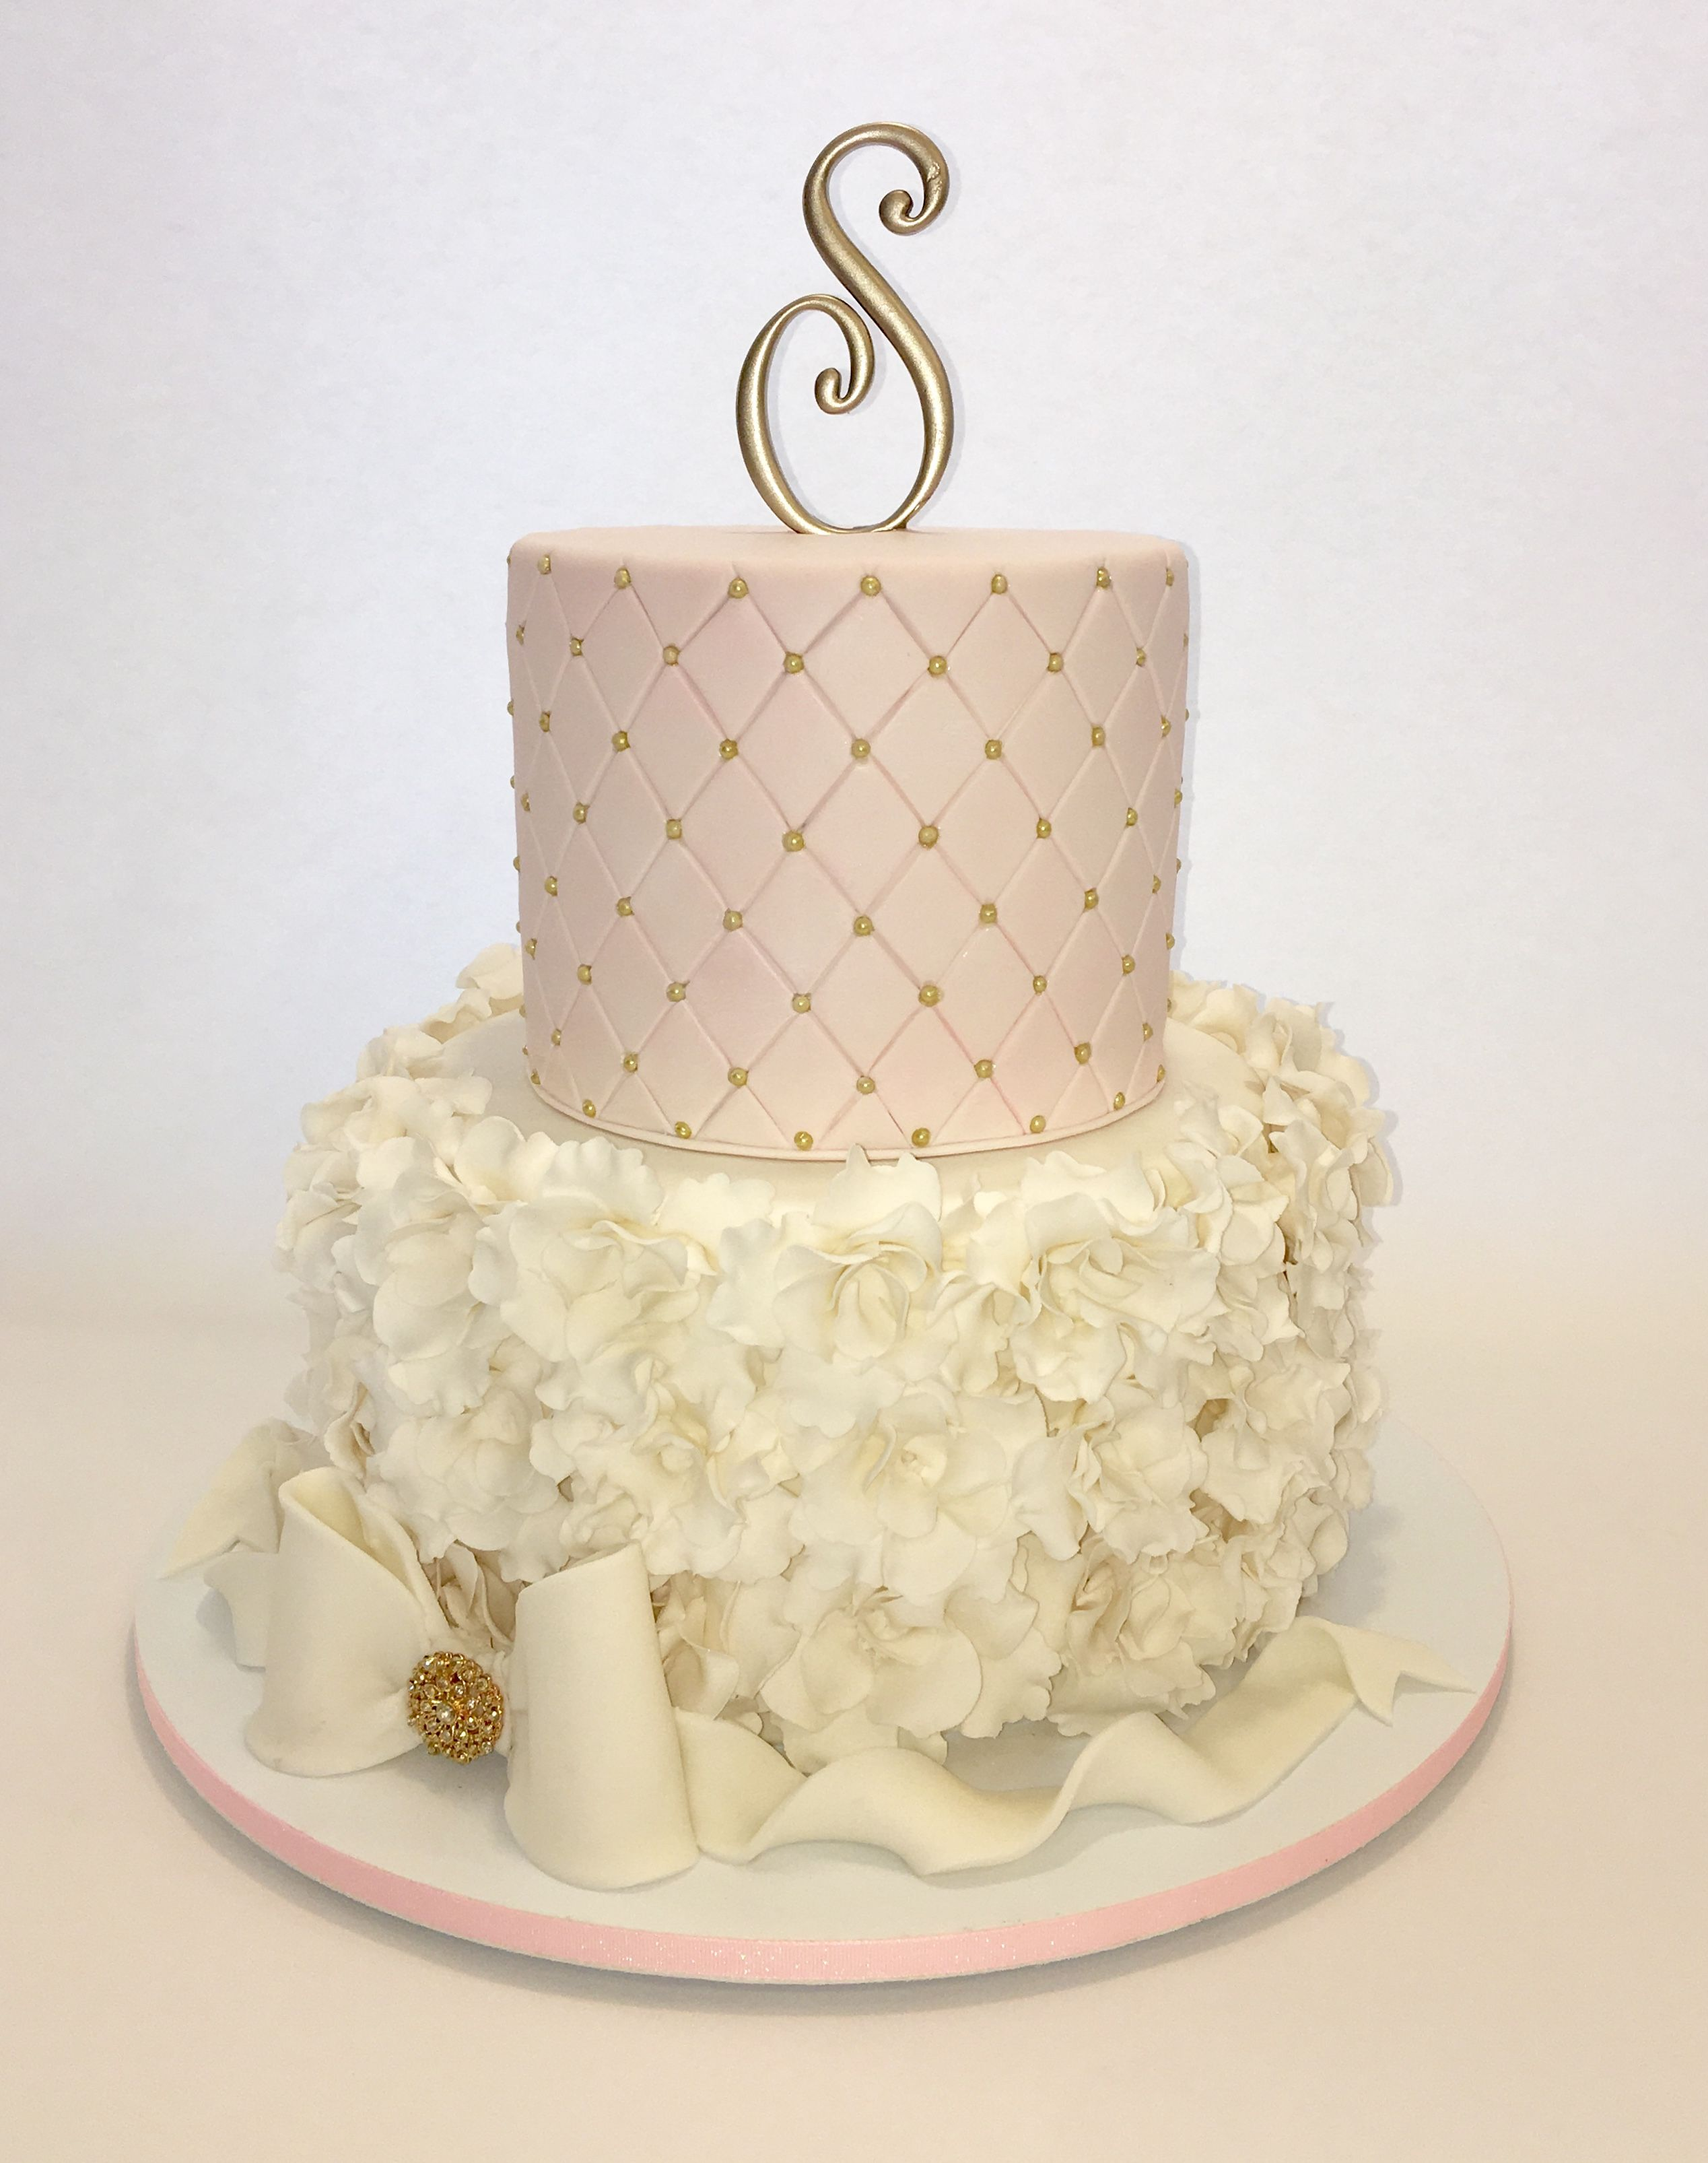 Ruffles and Quilting Sweet 16 Cake Light pink white and Gold